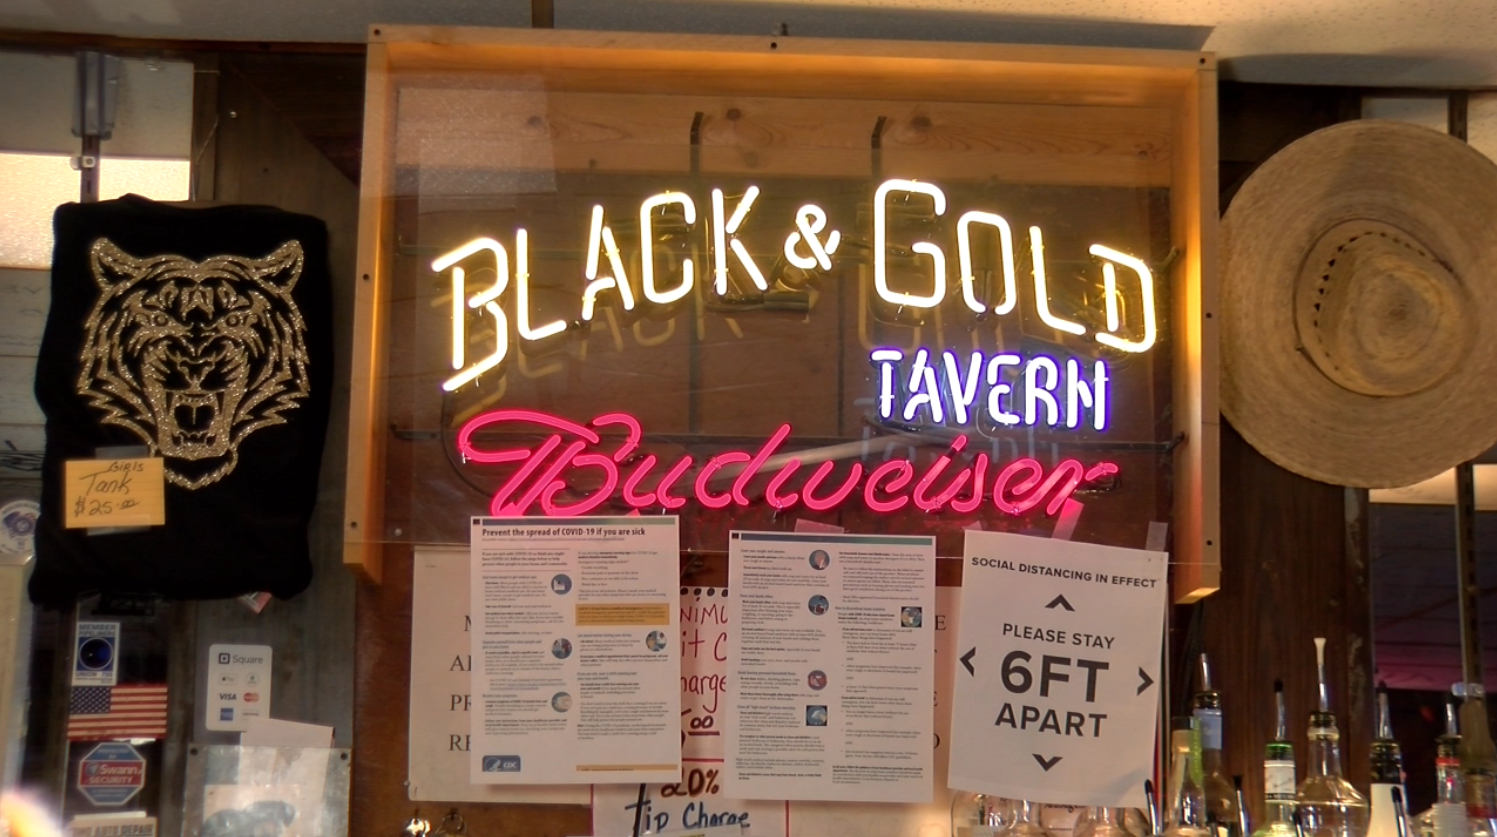 Black & Gold Tavern posted signs reminding customers to social distance.